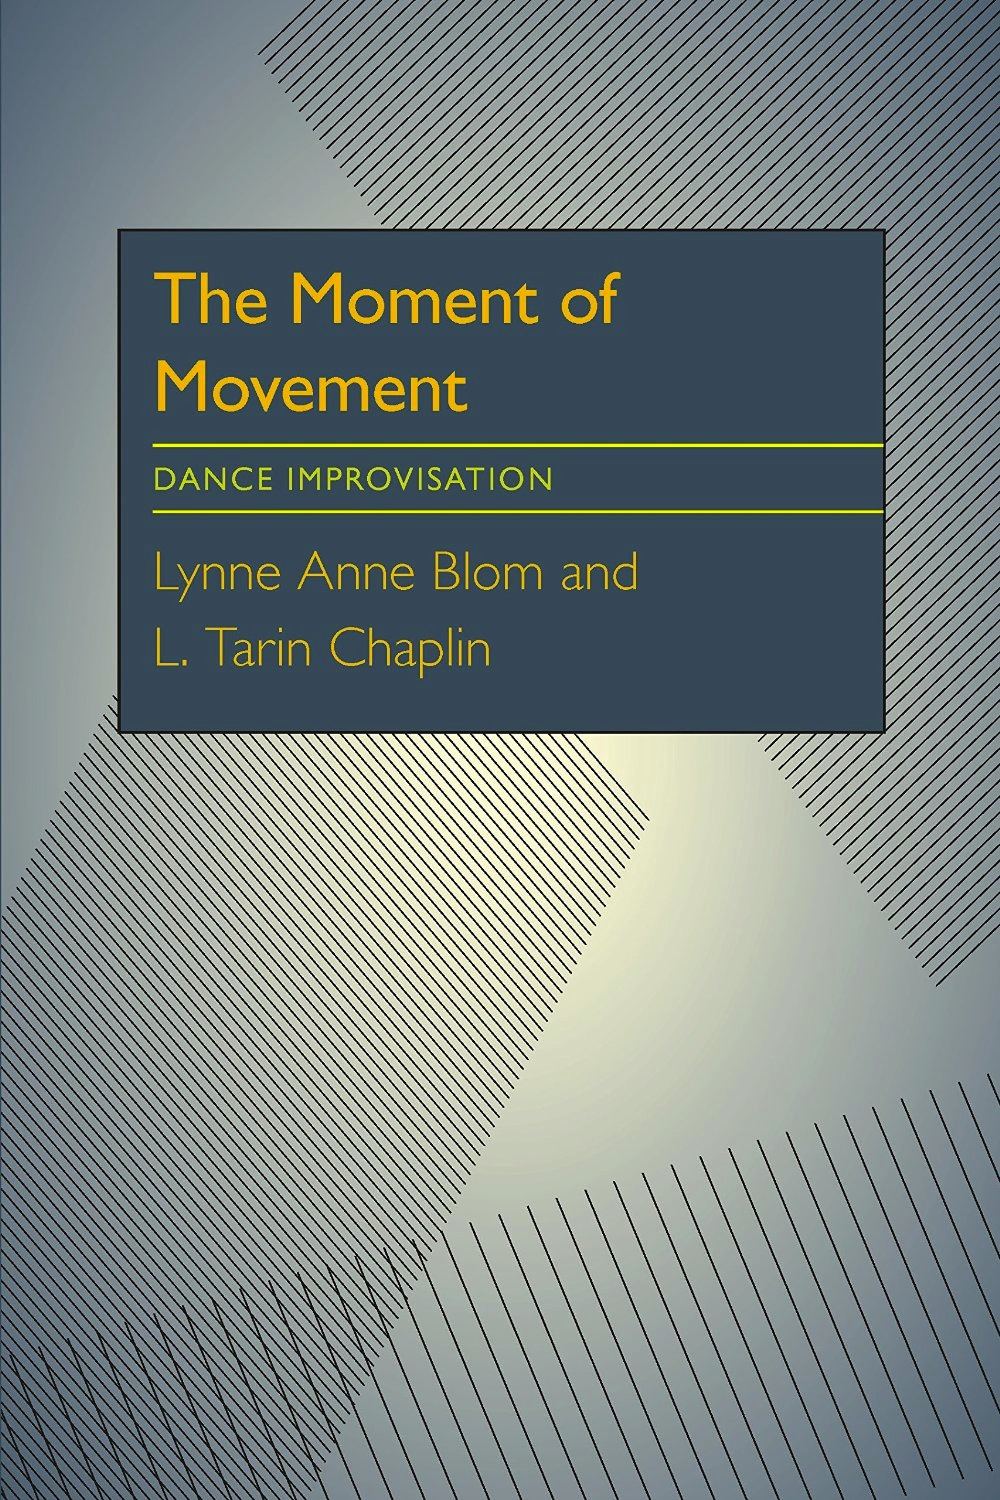 The Moment of Movement: Dance Improvisation<br>Lynne Anne Blom and L. Tarin Chaplin